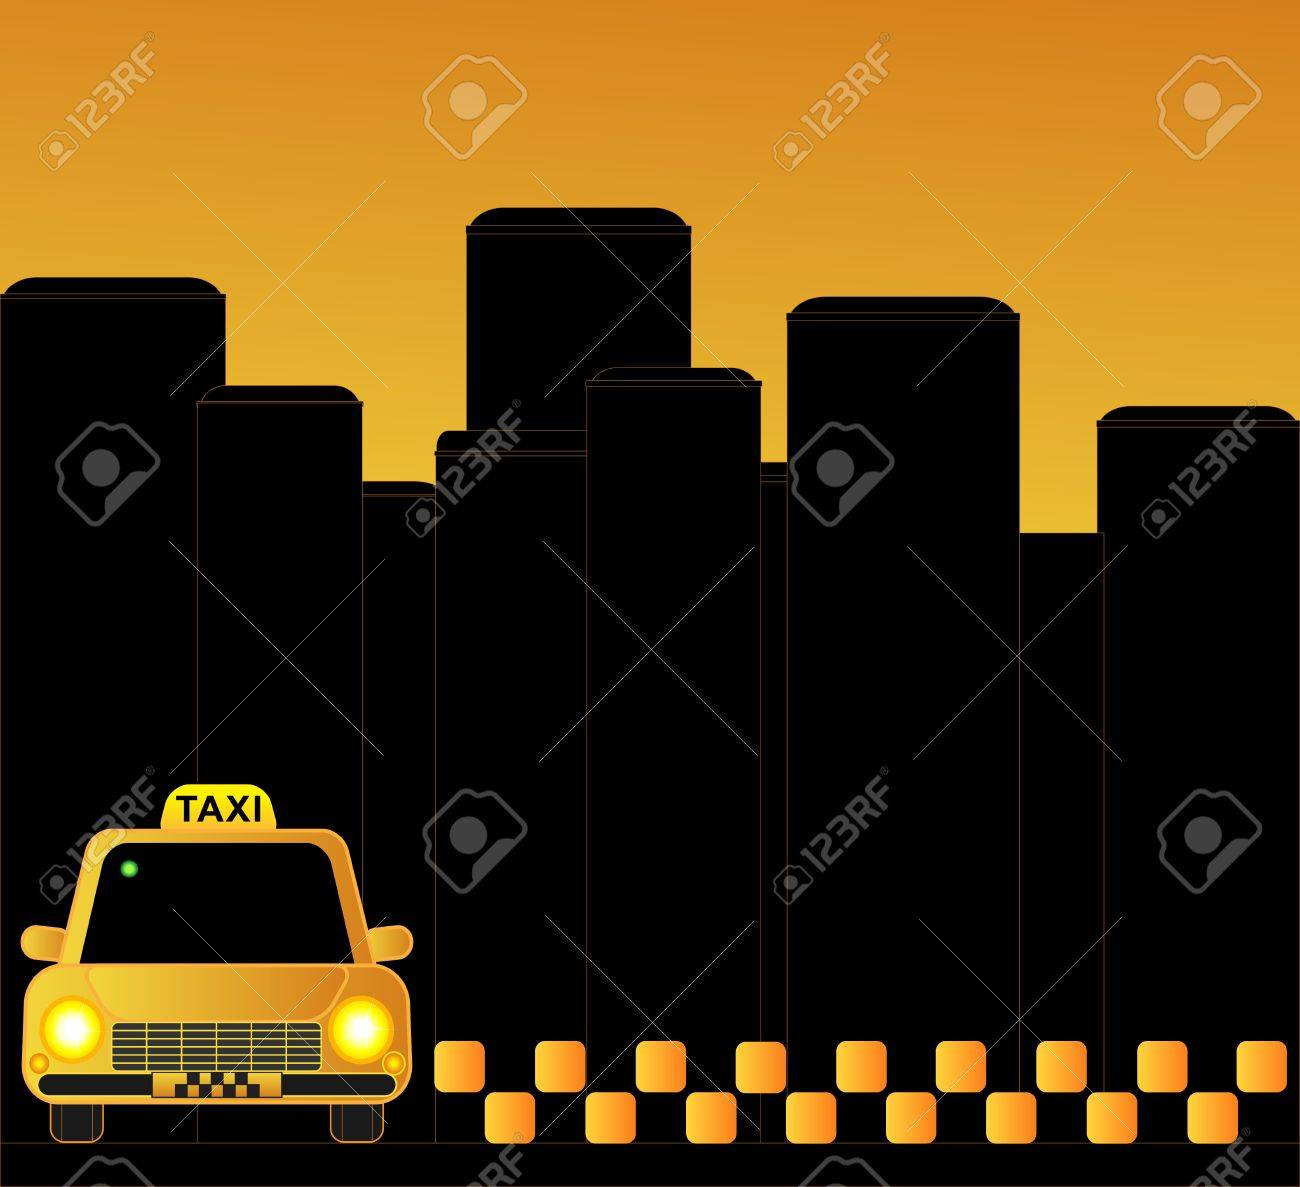 urban taxi background with many skyscrapers Stock Vector - 12340589